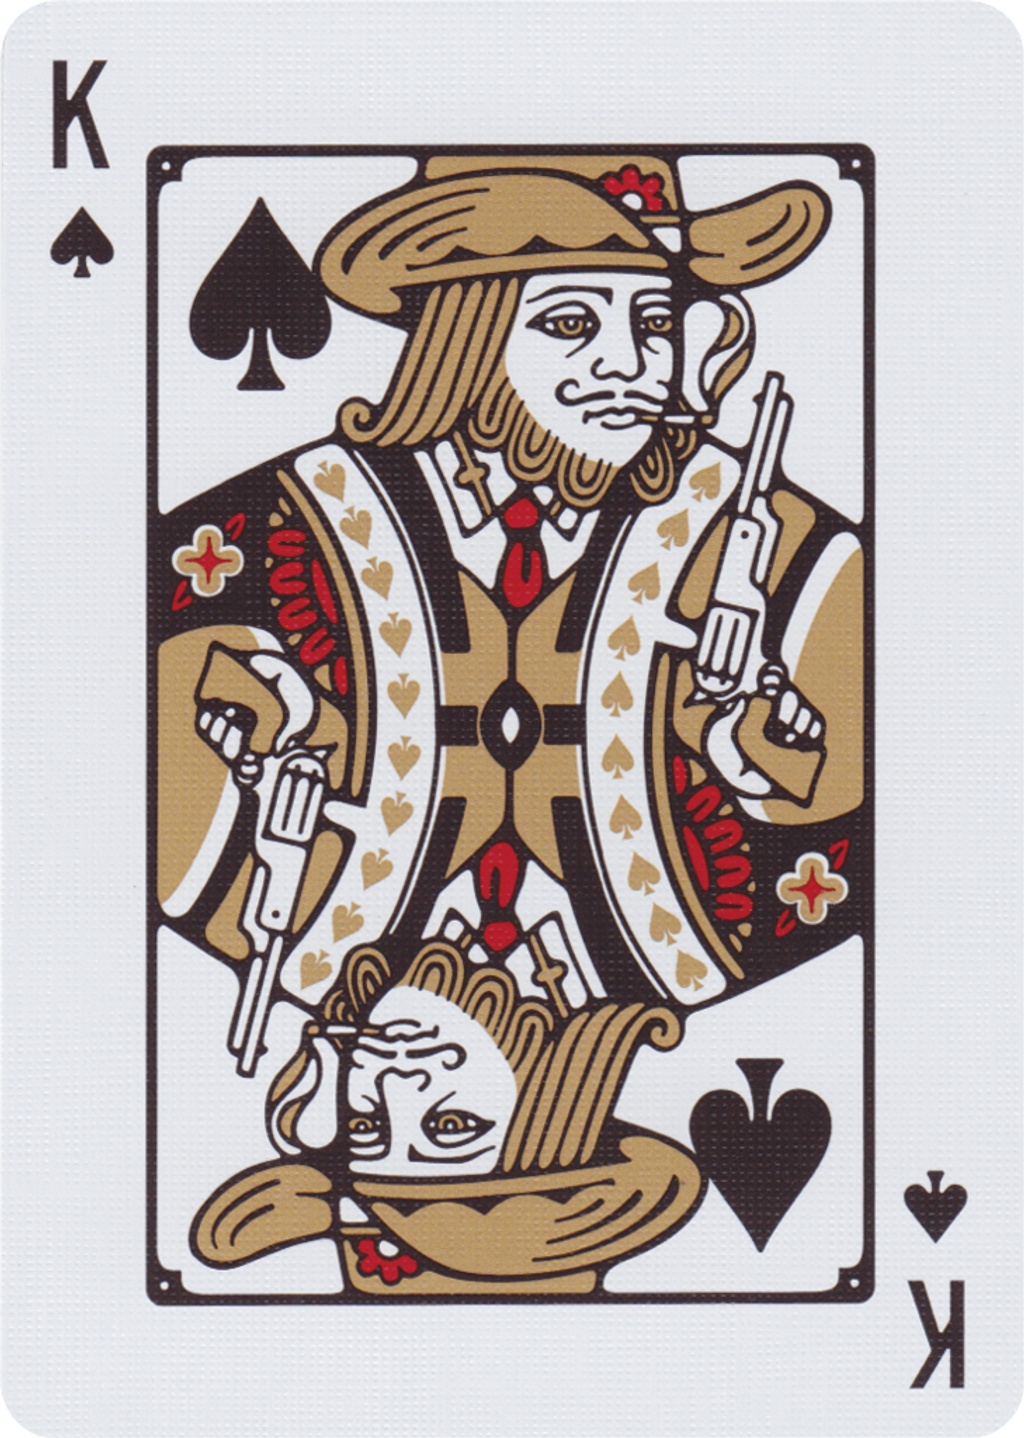 playing-cards-drifters-6_1024x1024.png